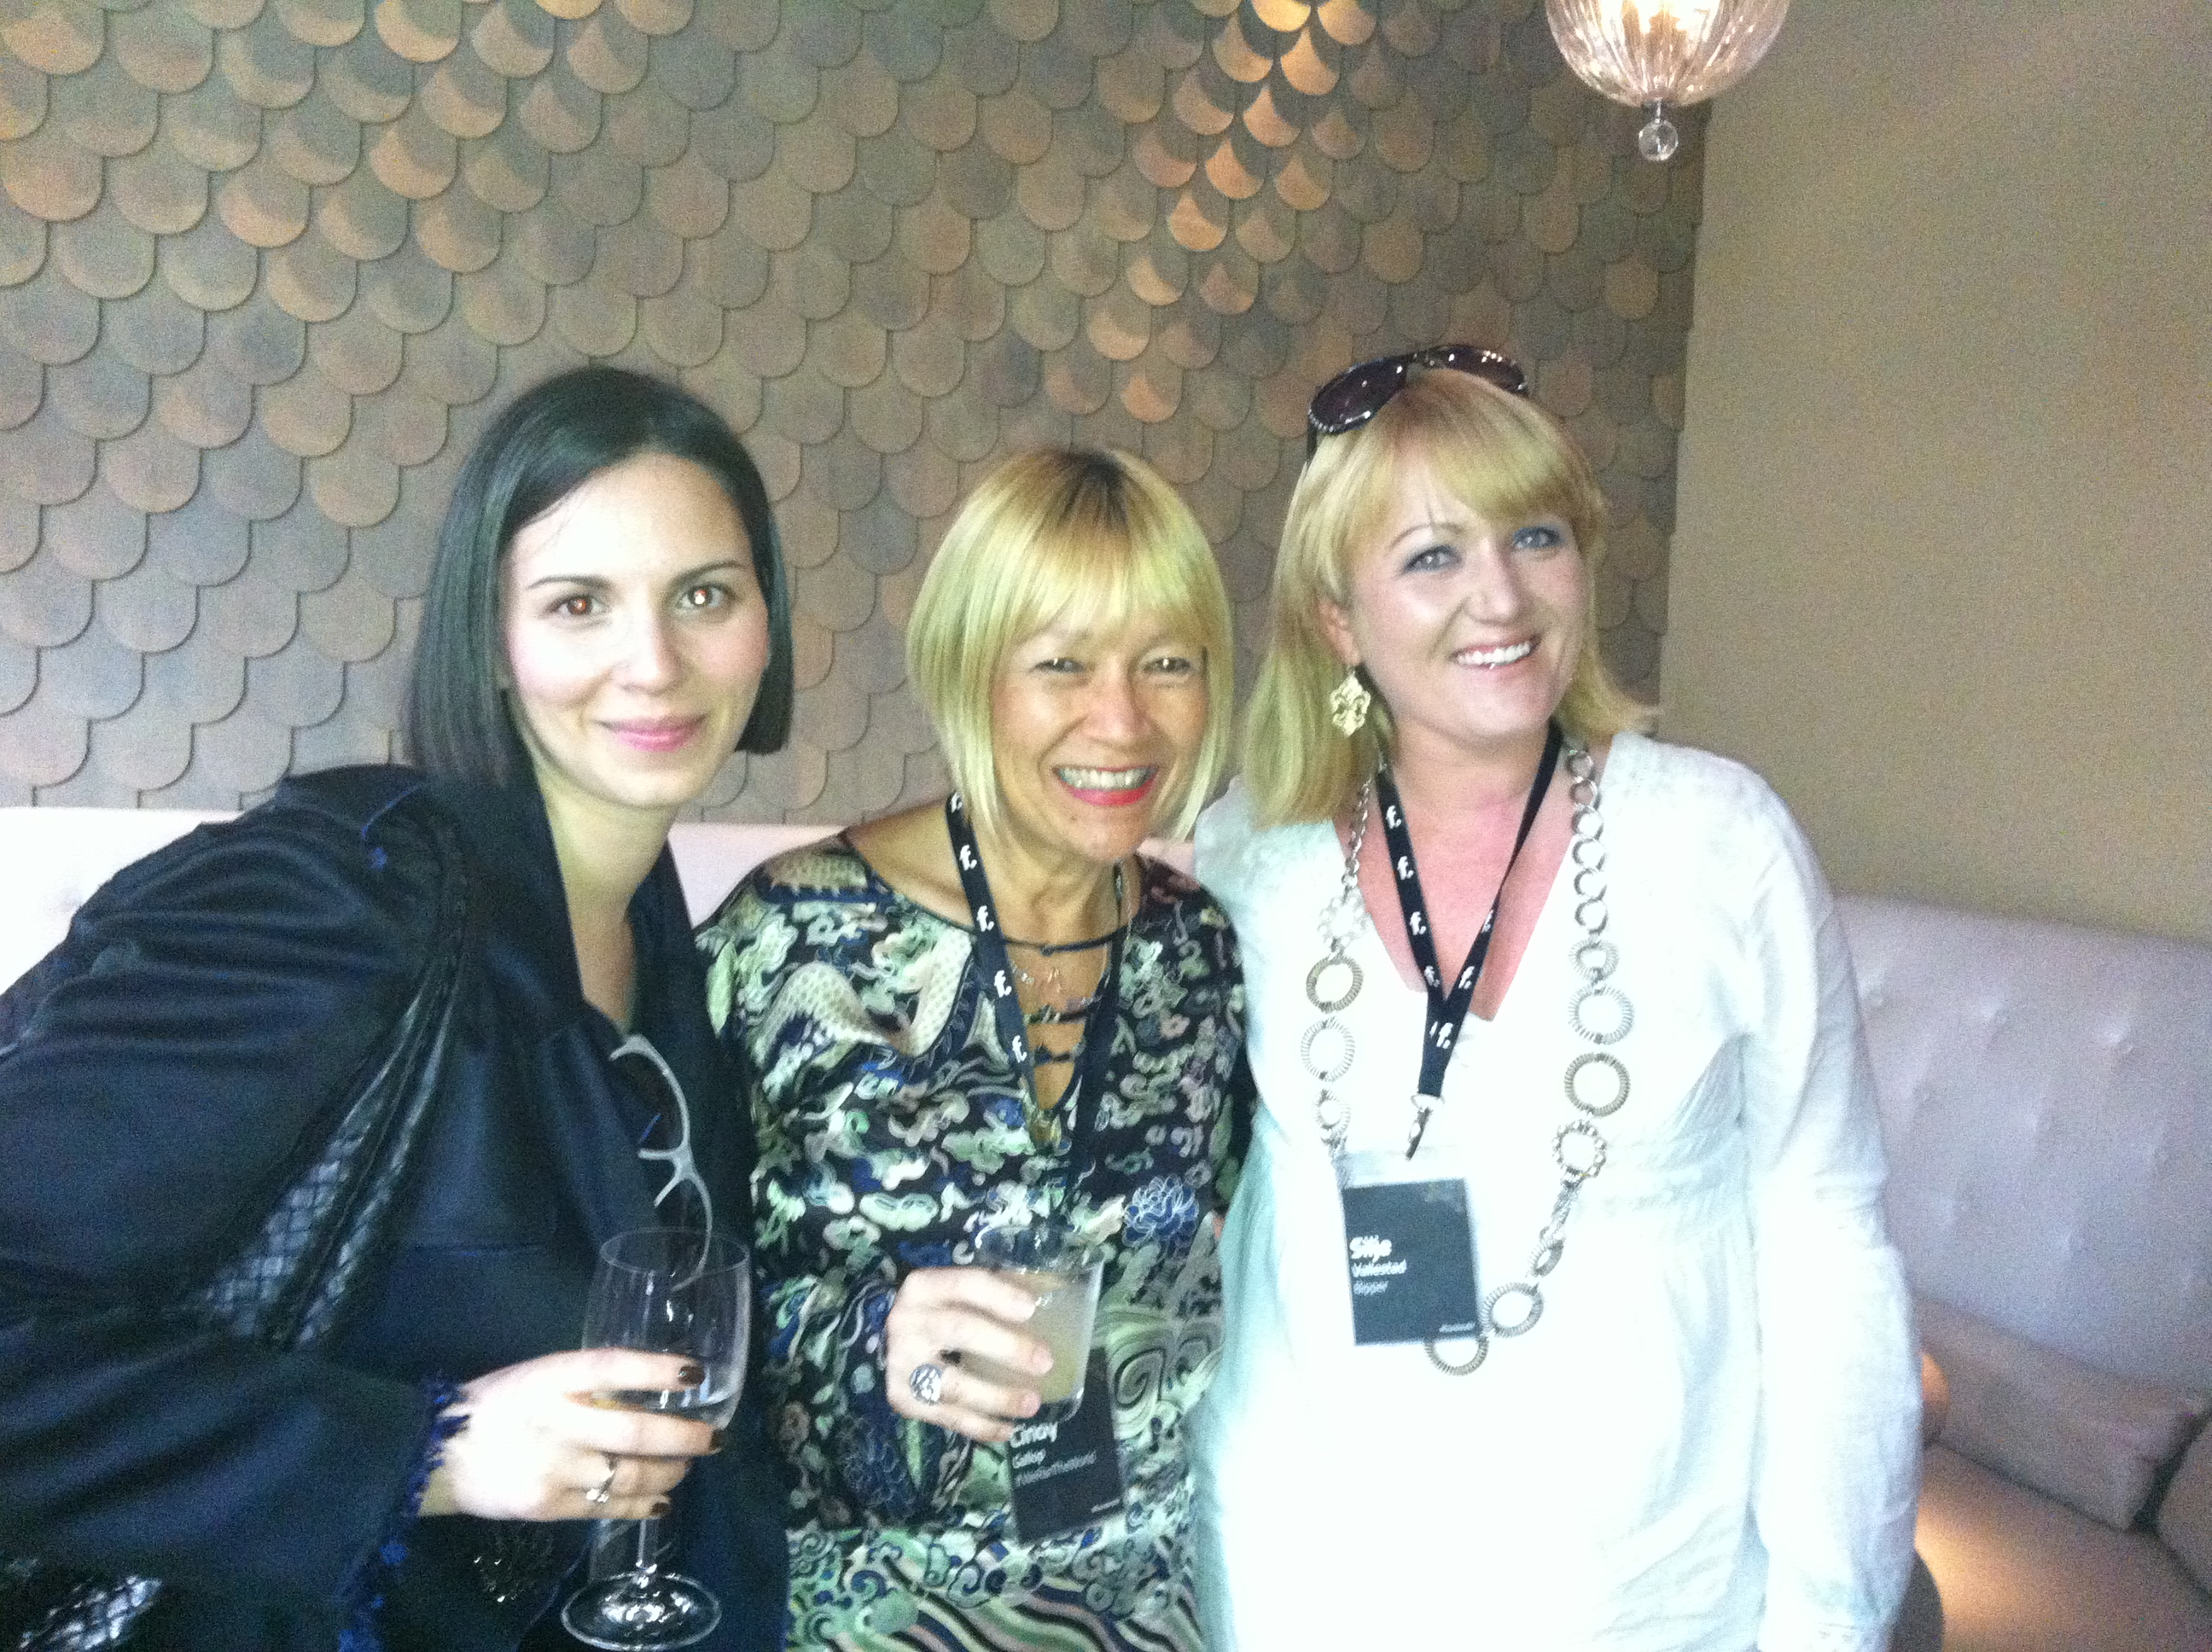 If We Ran The World's Cindy Gallop and Bipper's Silje Vallestad at the F.ounders NY 2012 Reception at Mondrian Soho